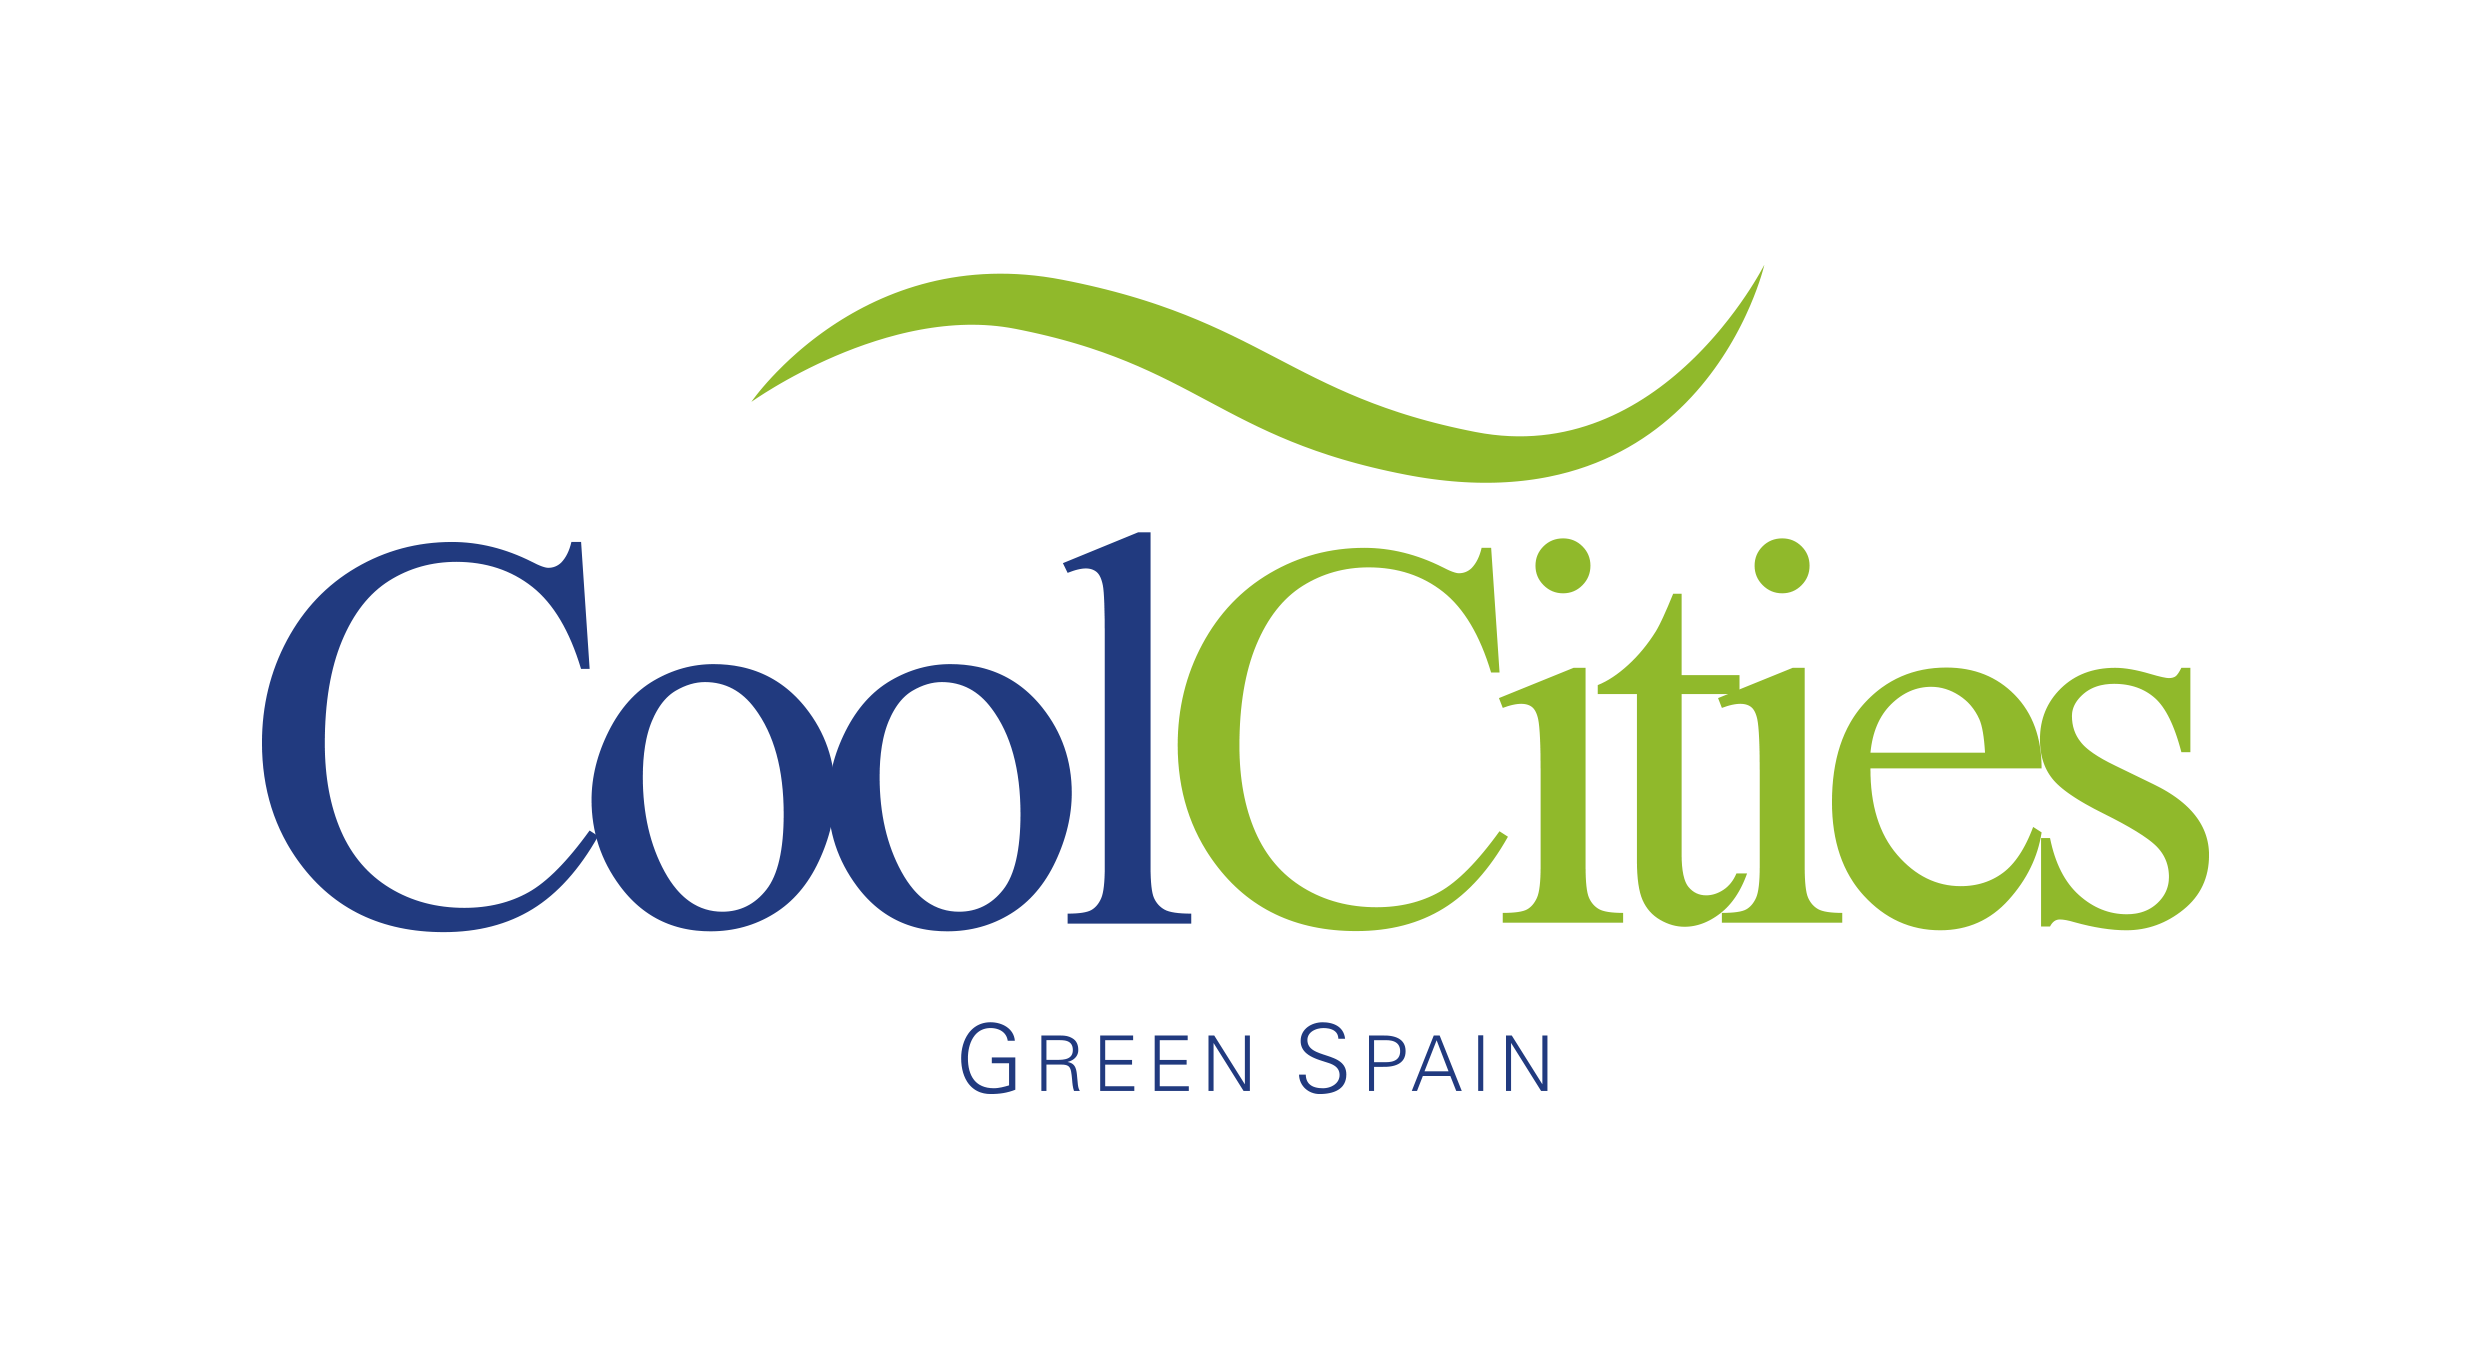 CoolCities